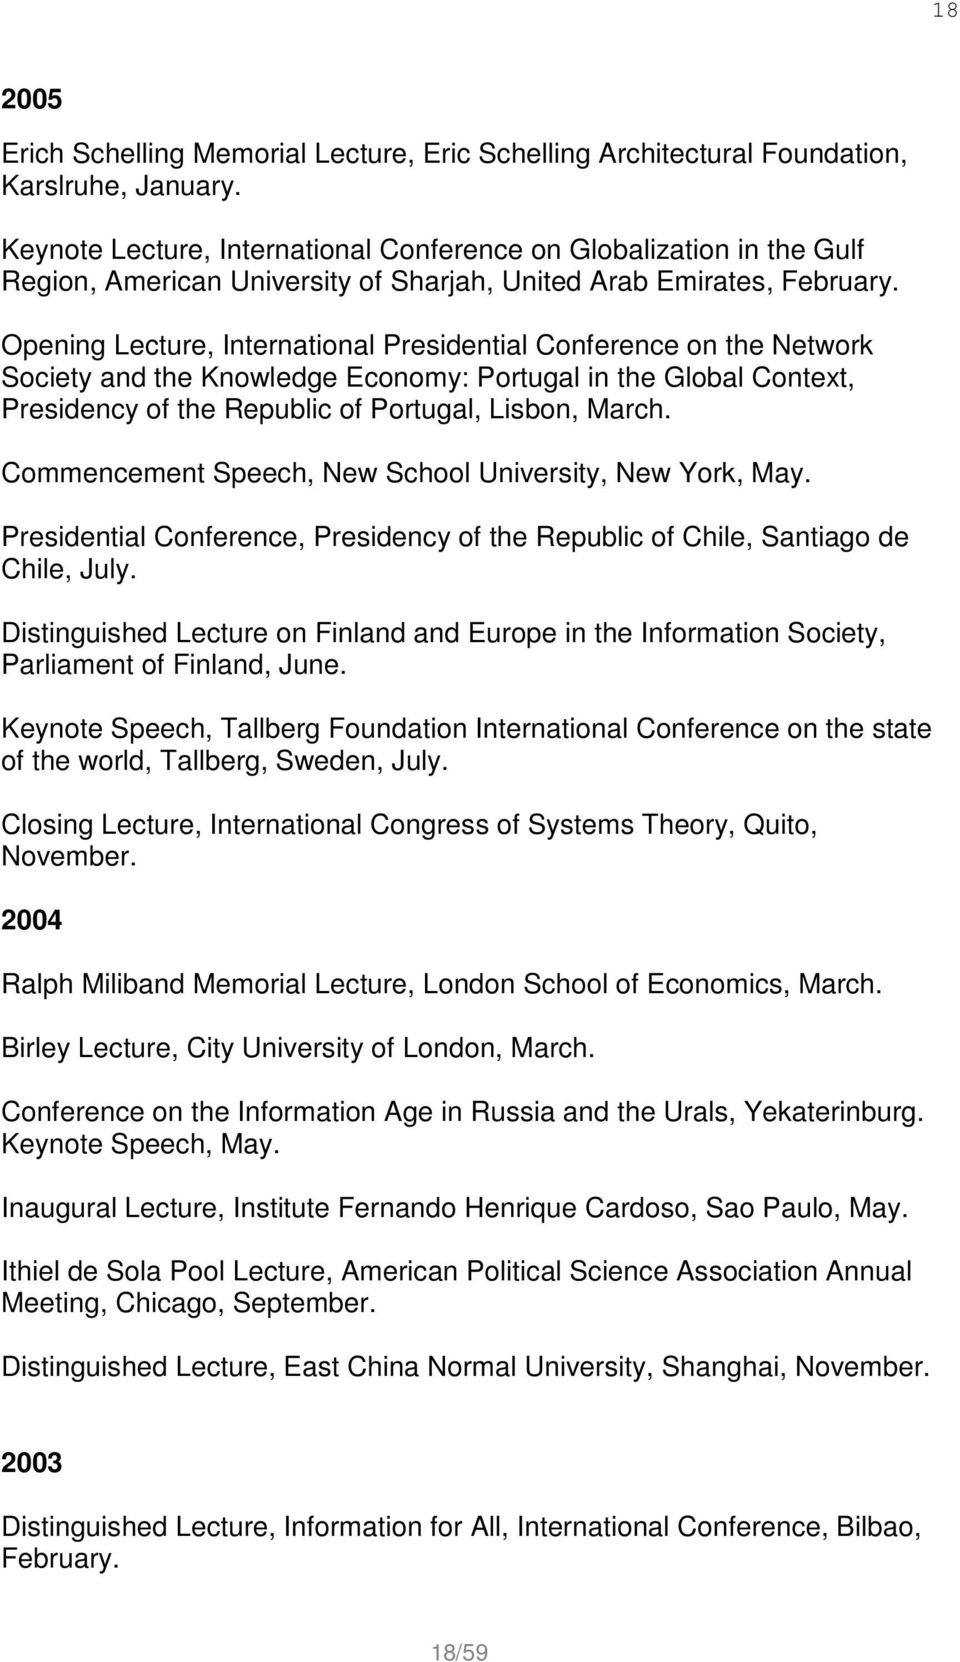 Opening Lecture, International Presidential Conference on the Network Society and the Knowledge Economy: Portugal in the Global Context, Presidency of the Republic of Portugal, Lisbon, March.